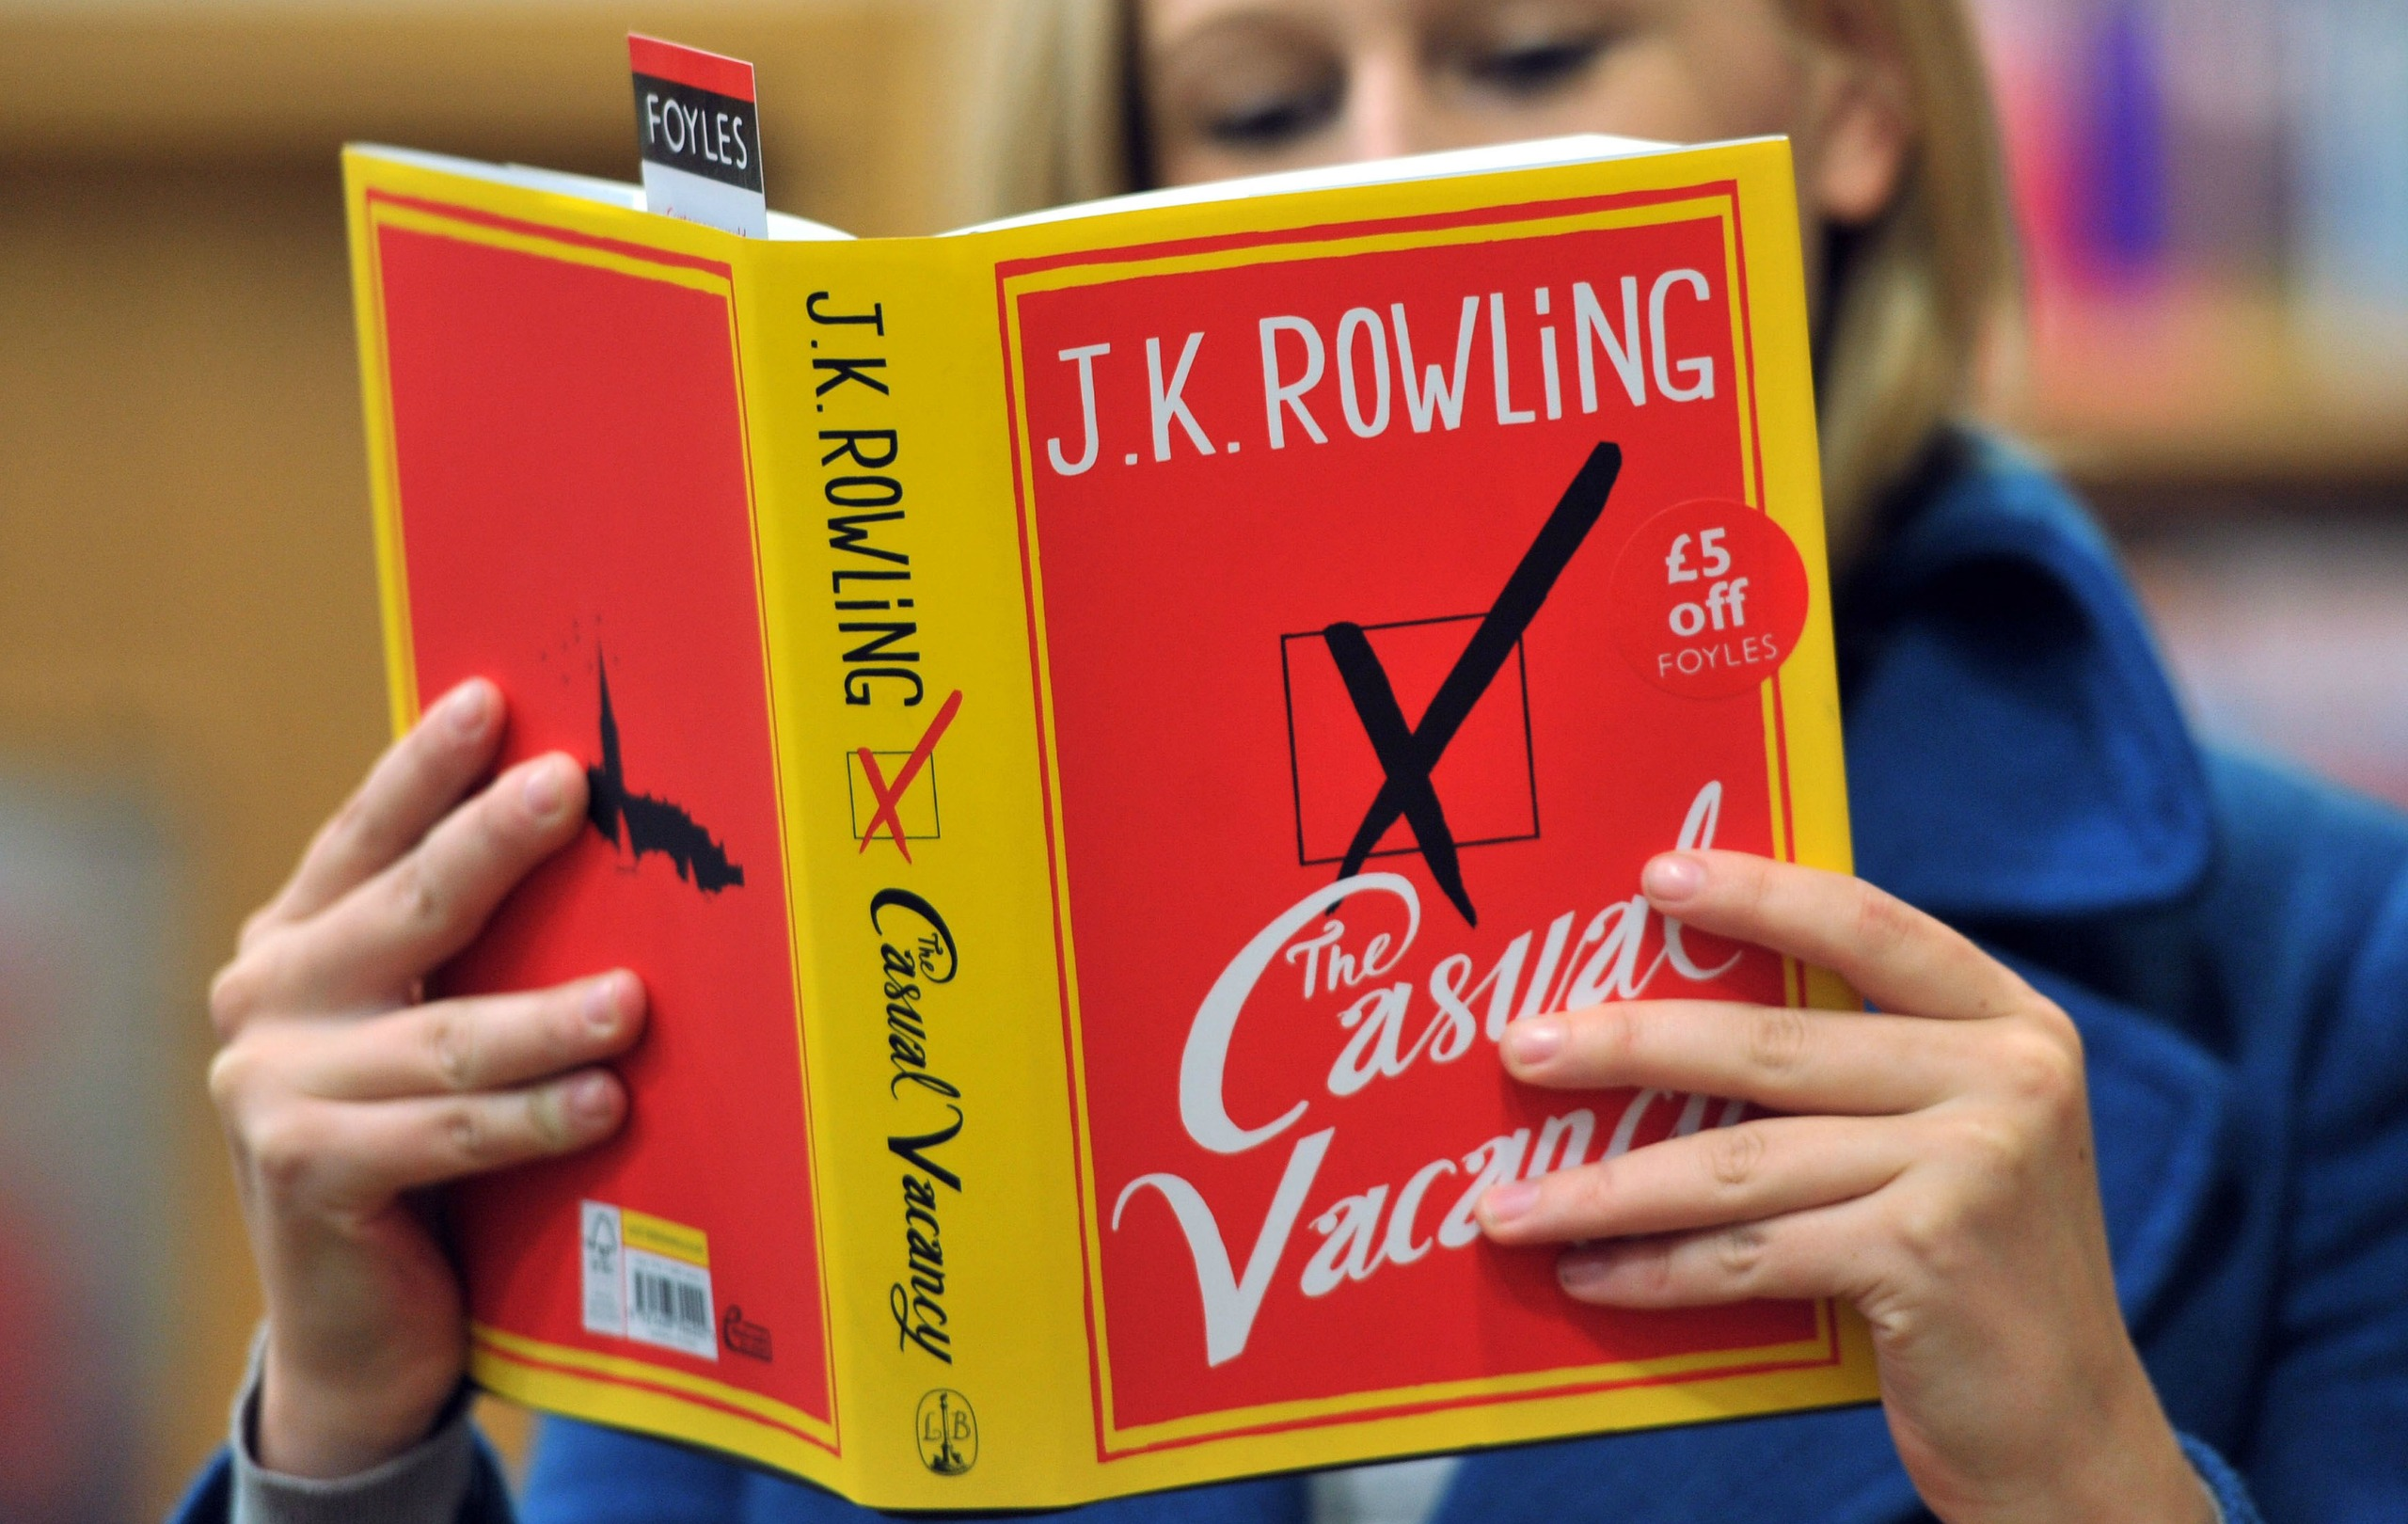 J.K. Rowling's The Casual Vacancy to begin shooting for HBO summer 2014